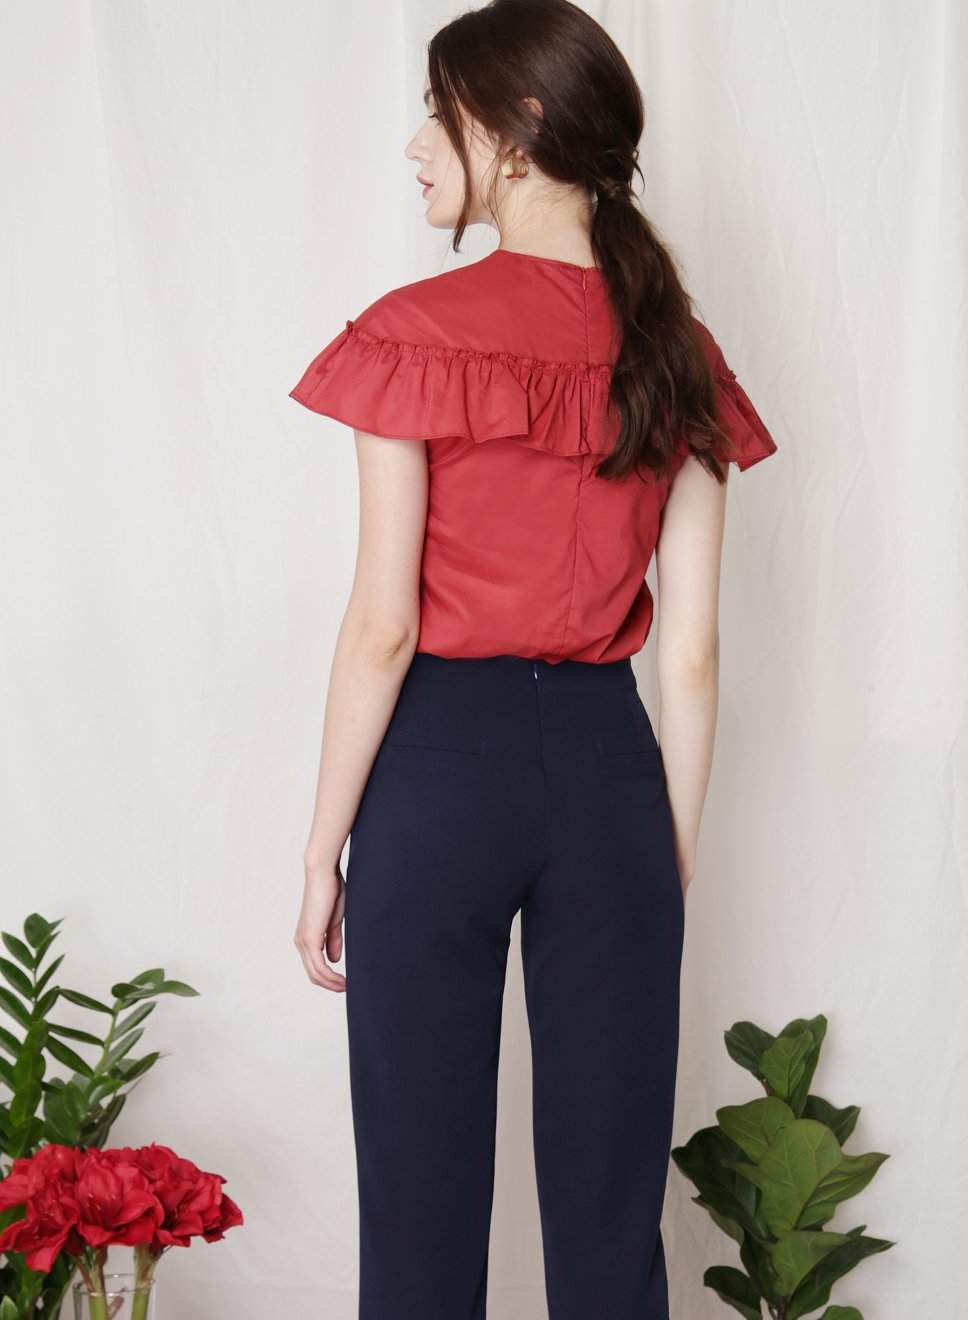 FLUTTER Ruffle Detail Top (Brick) at $ 33.50 only sold at And Well Dressed Online Fashion Store Singapore